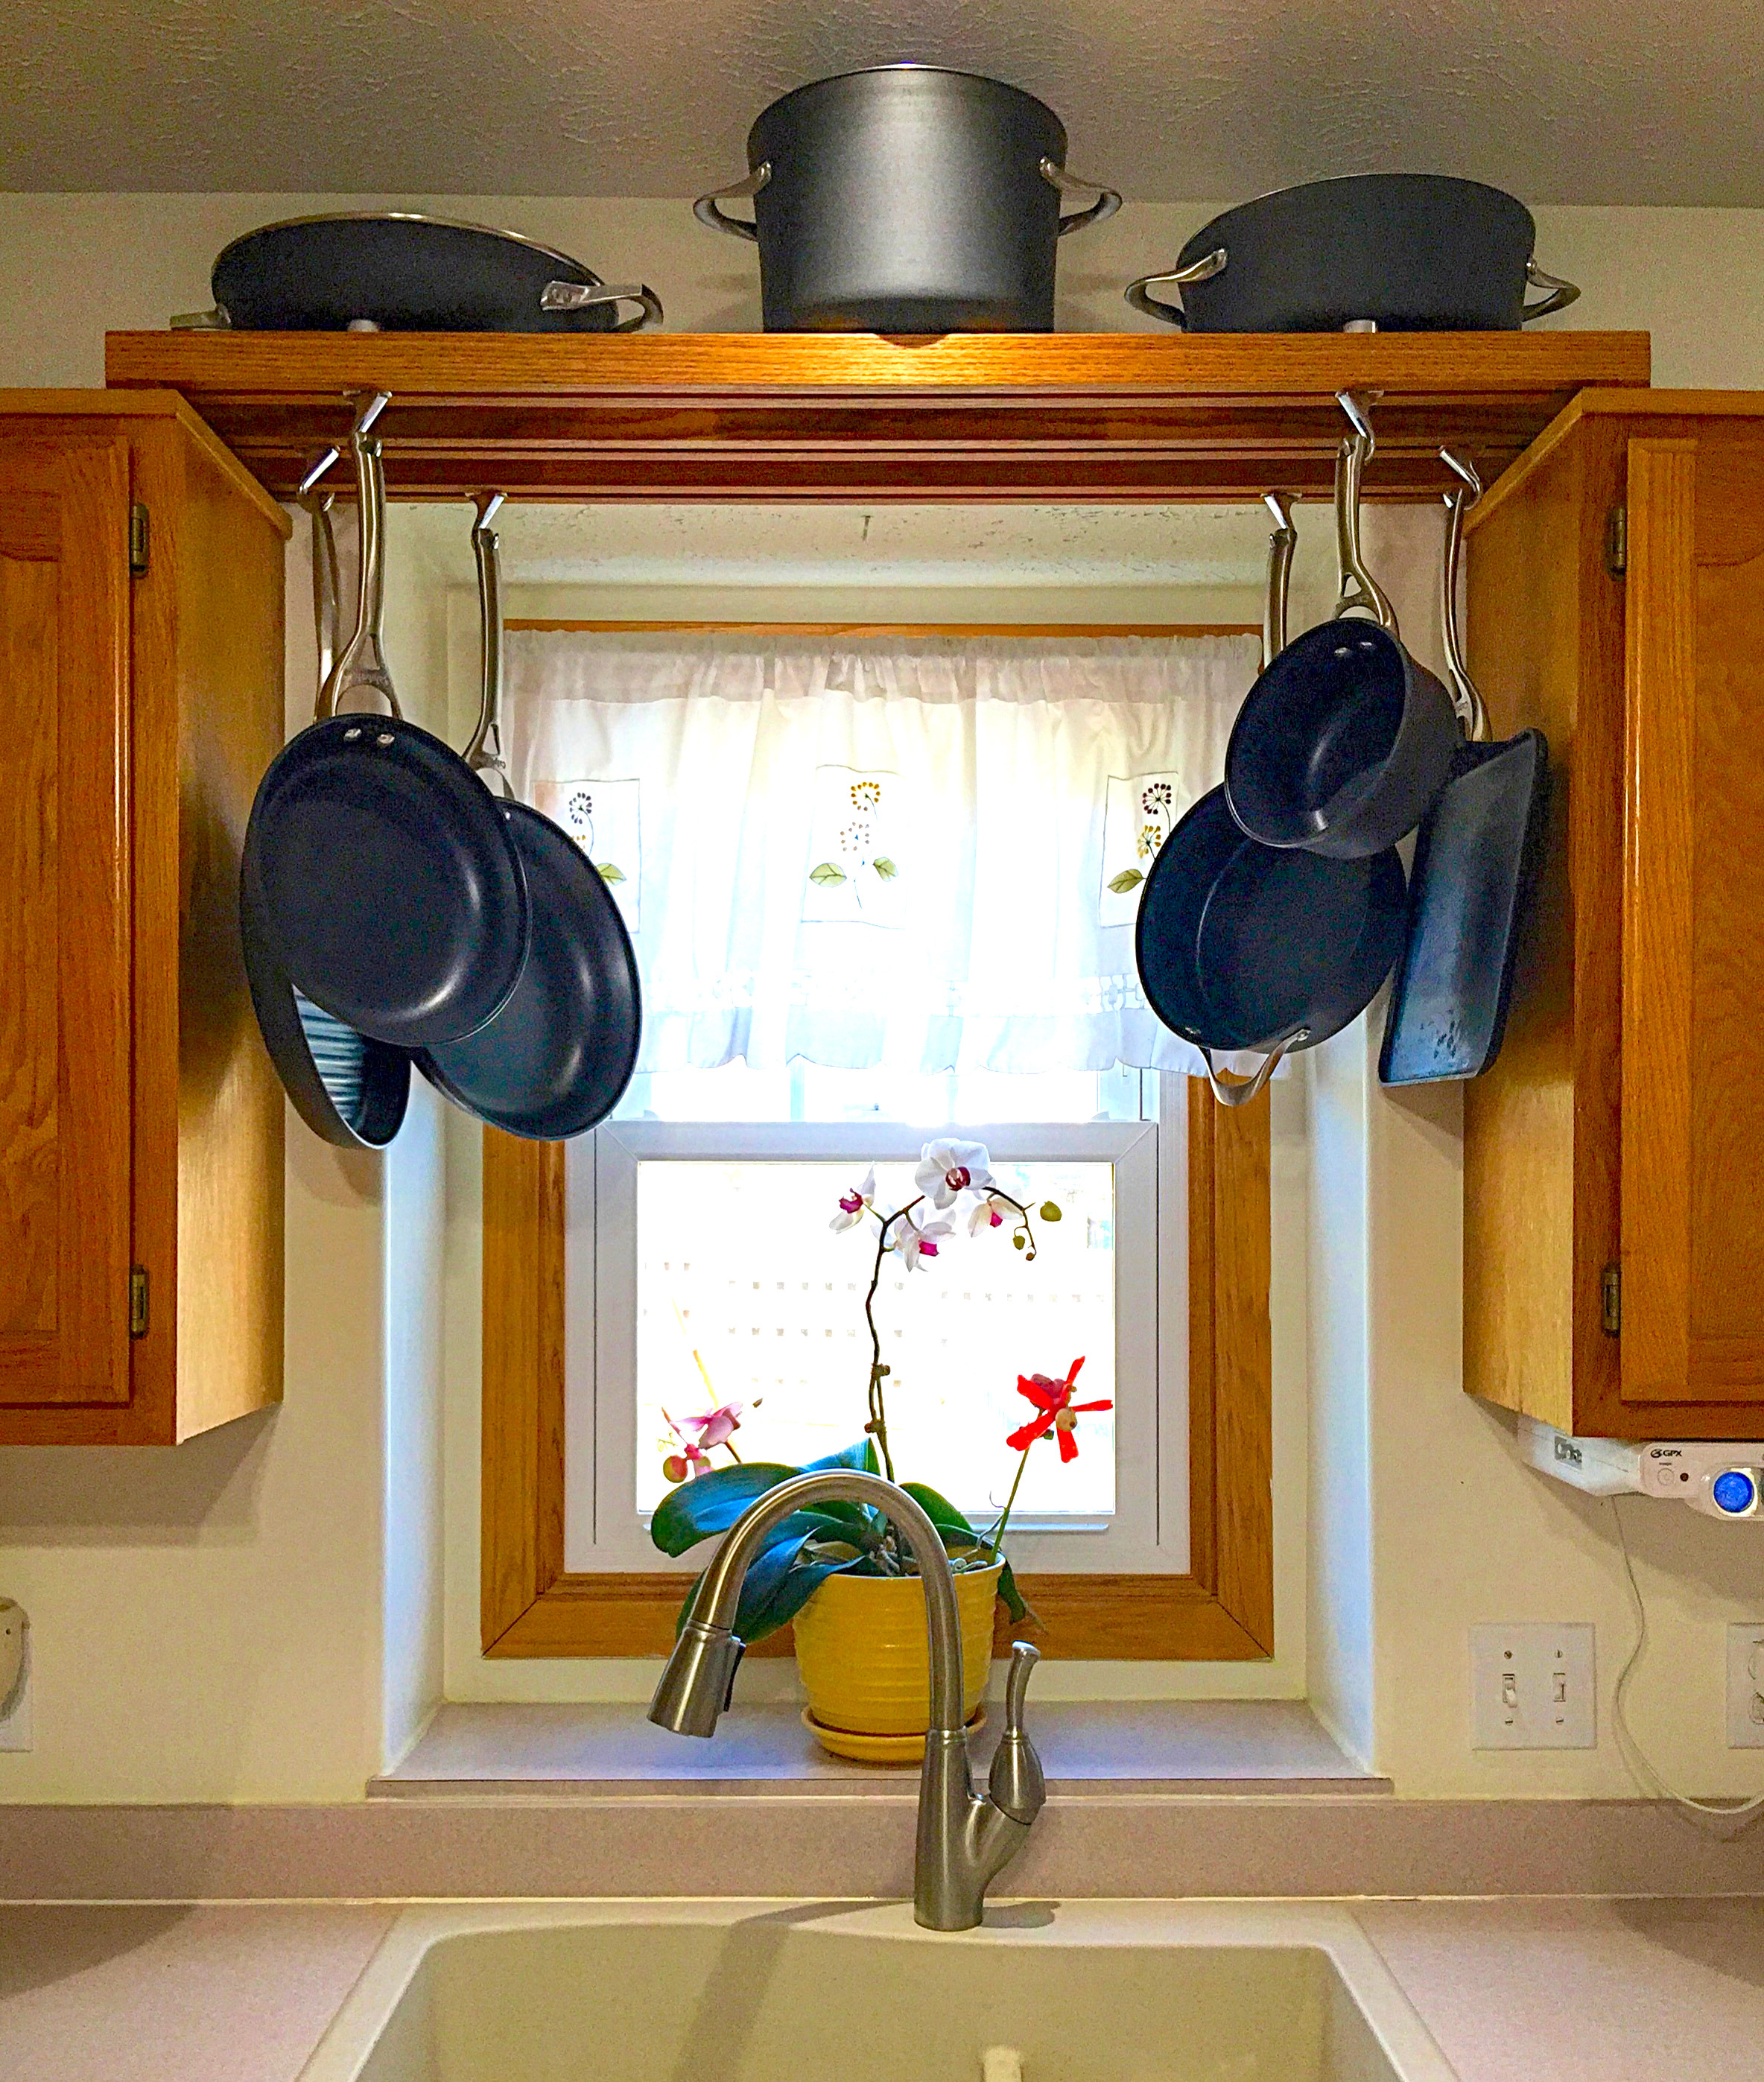 Best ideas about DIY Hanging Pot Racks . Save or Pin Make use of space over the kitchen sink with this DIY pot Now.